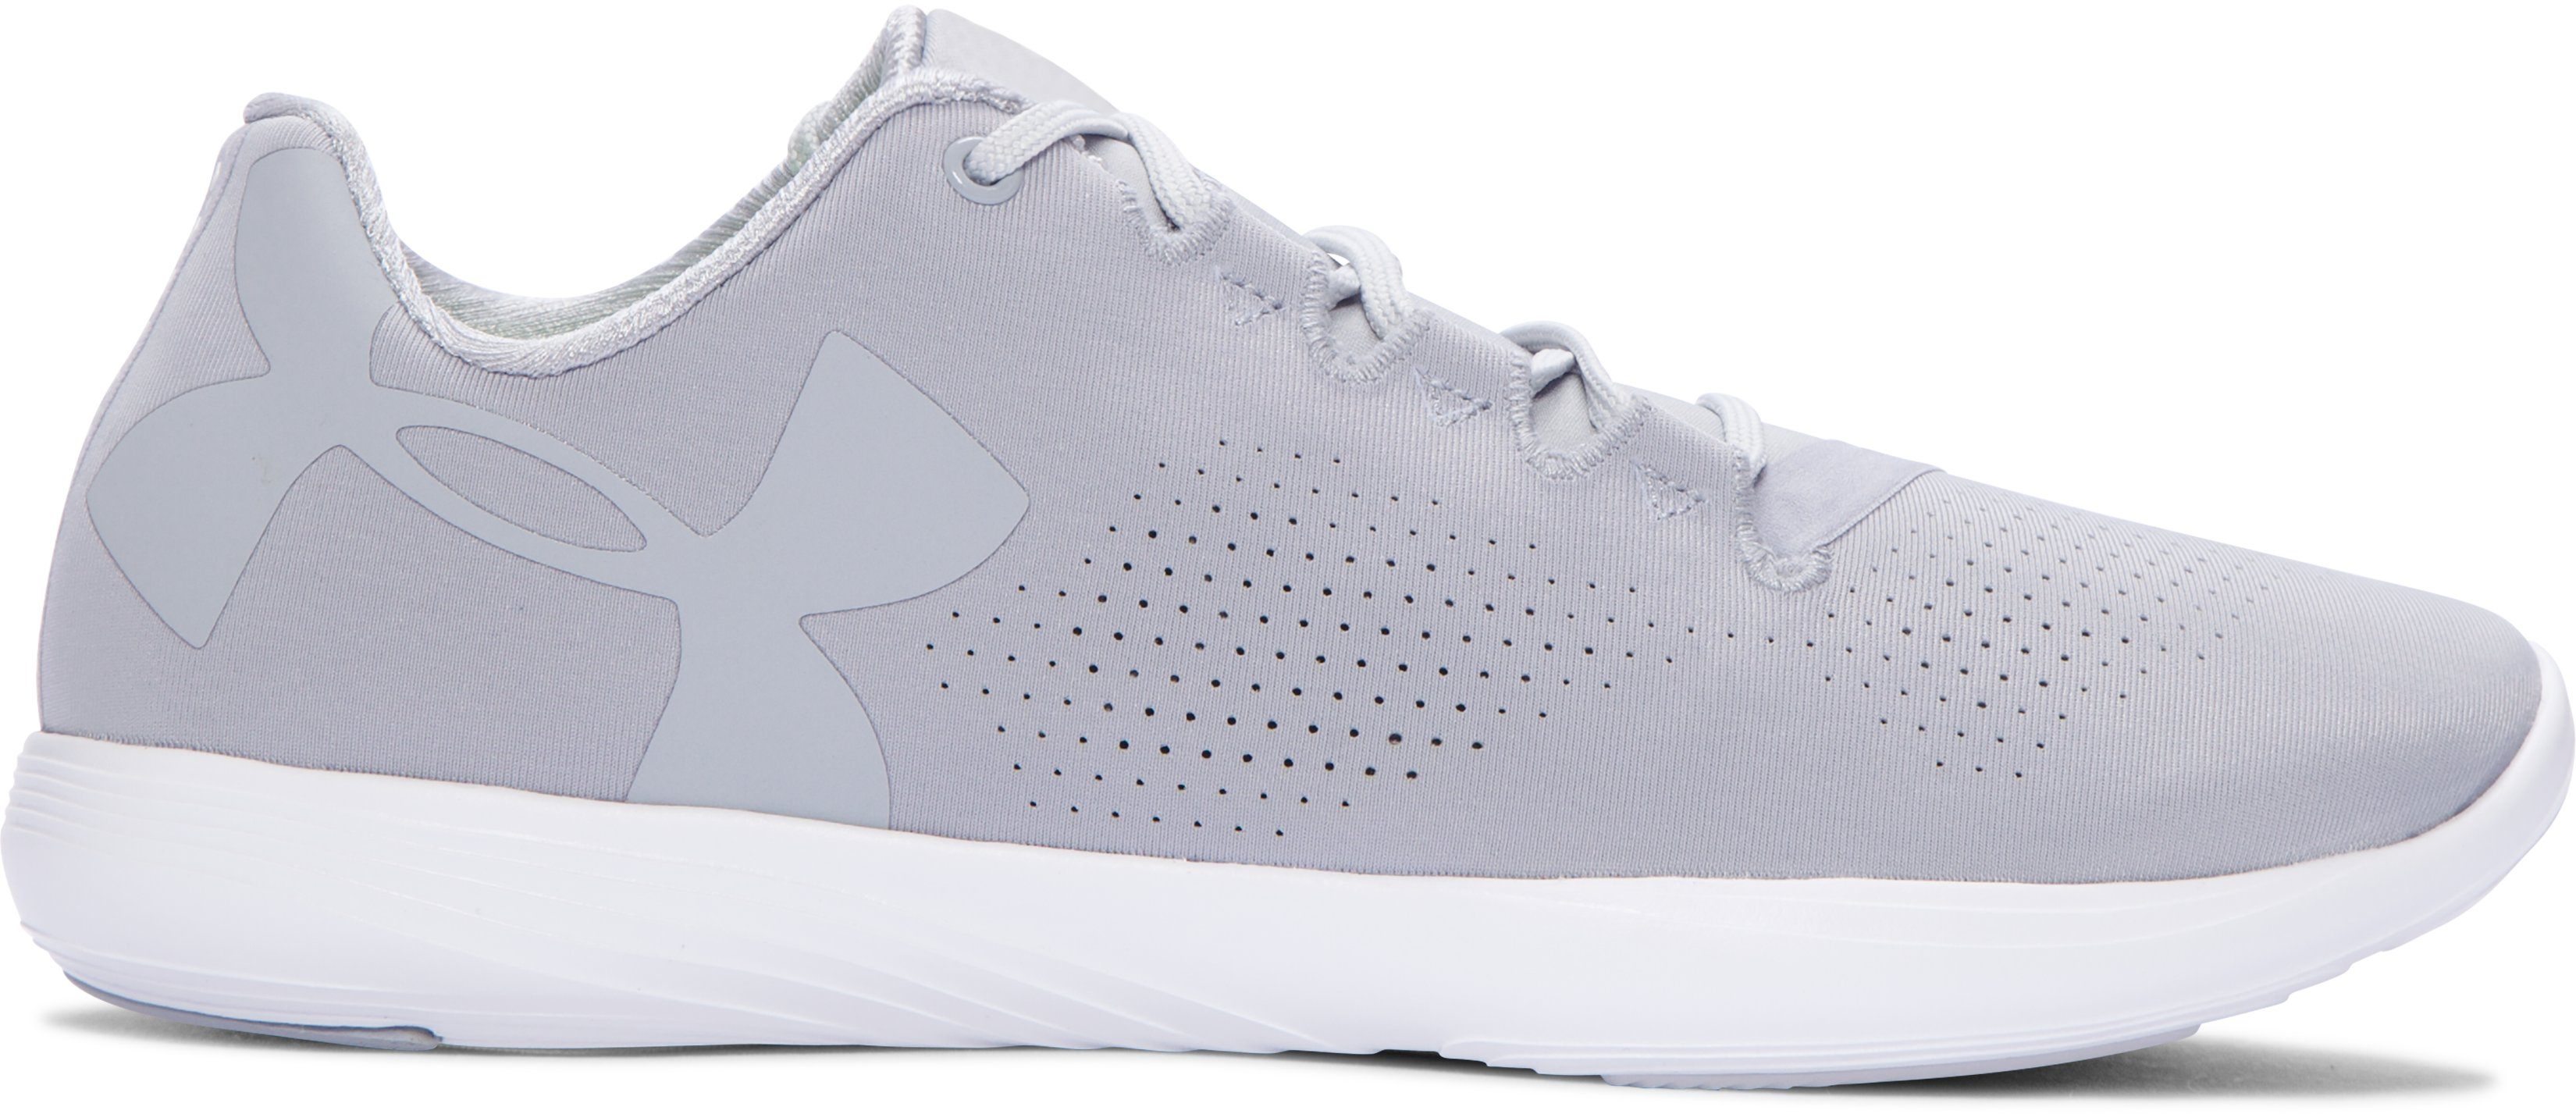 Women's UA Street Precision Low Training Shoes, OVERCAST GRAY